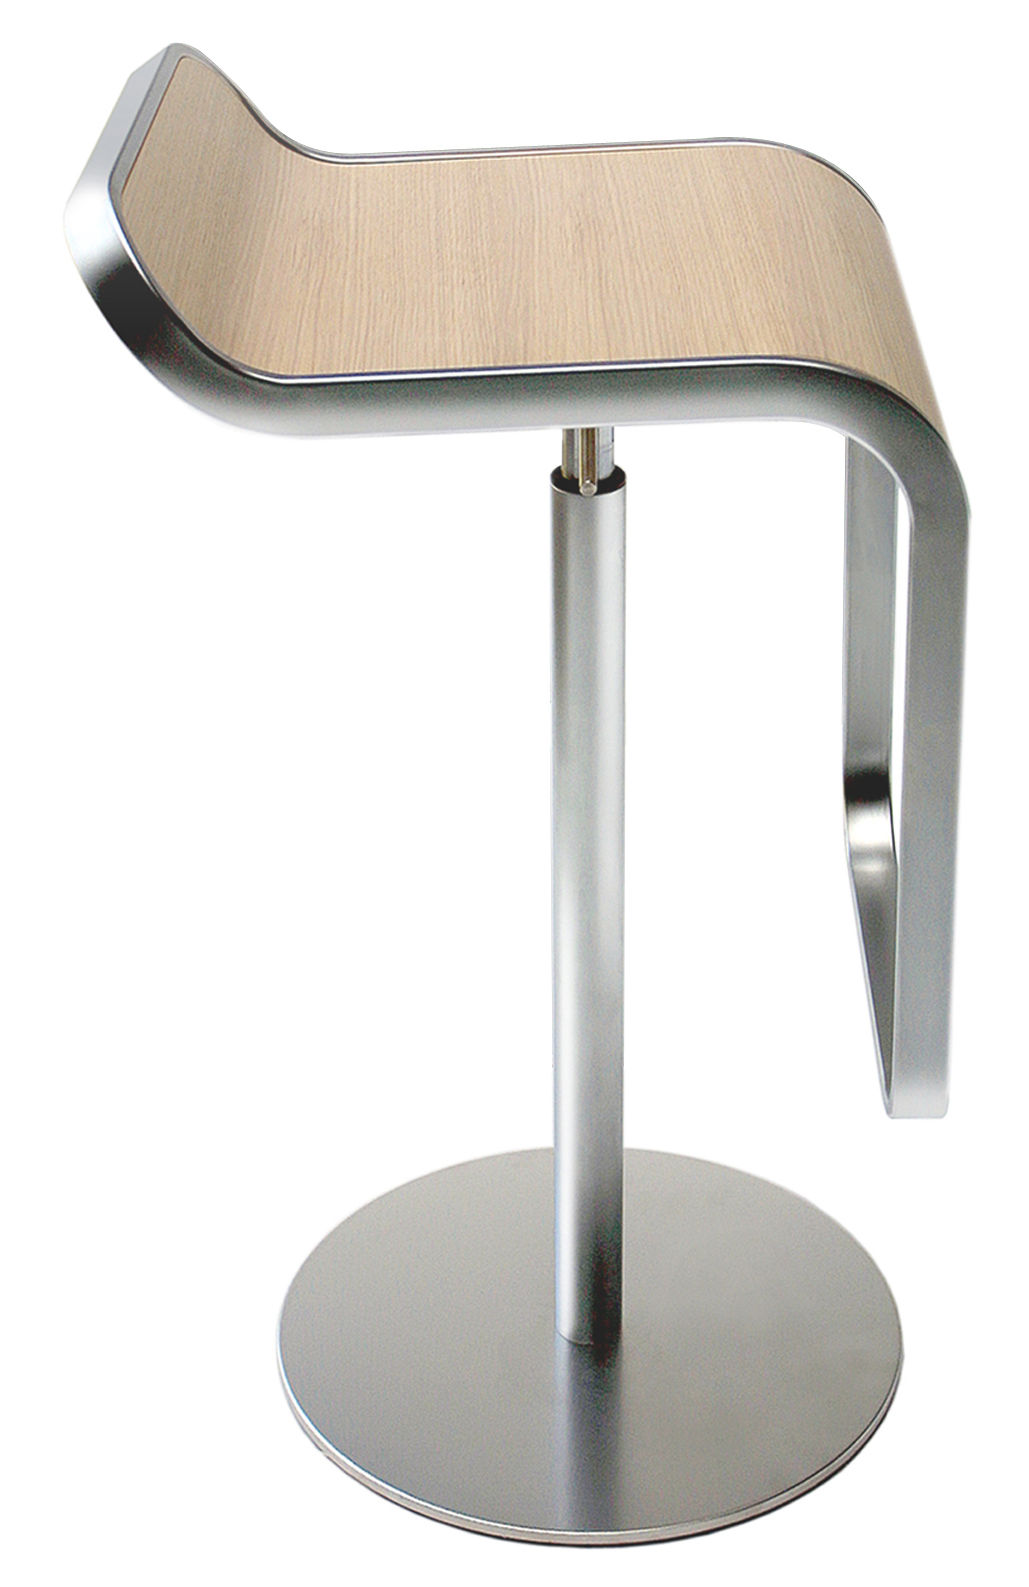 Superb img of  Bar stools > Lem Adjustable bar stool Pivoting wood seat by Lapalma with #80674B color and 1029x1587 pixels